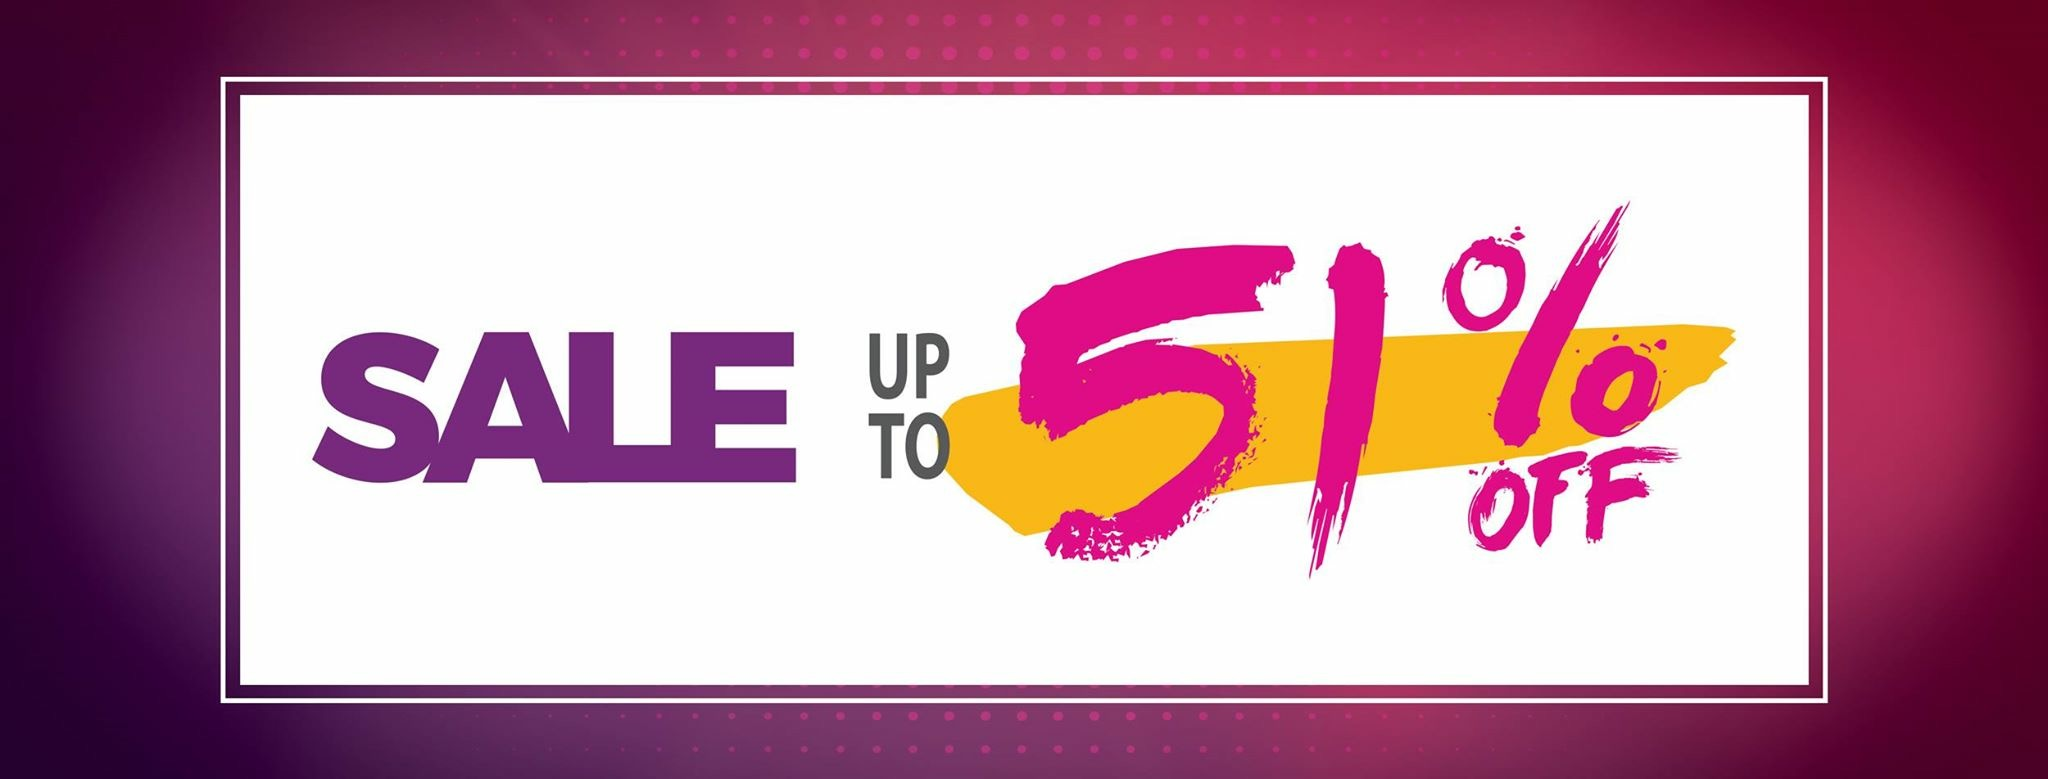 Stylo Shoes - Limited Time Golden Offer